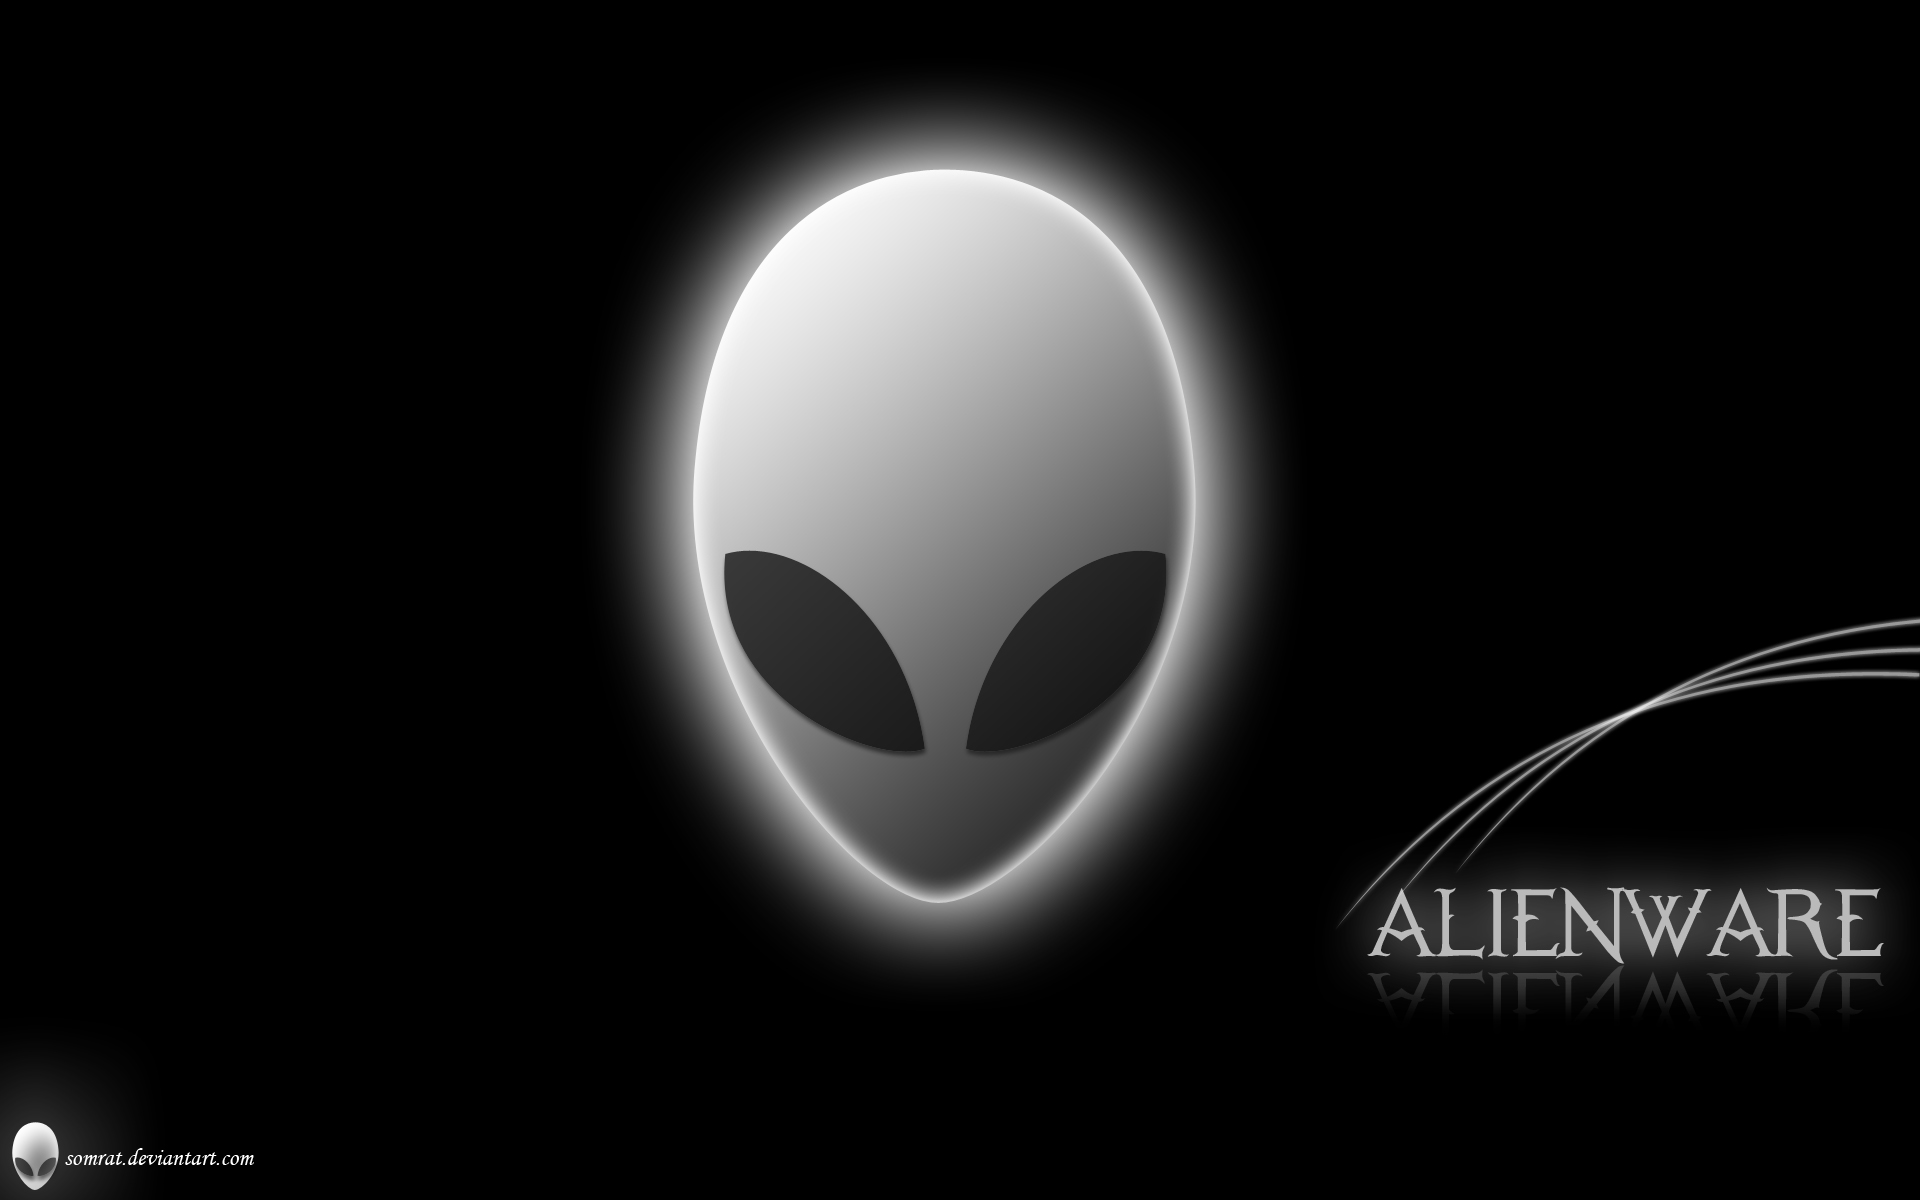 Alien Head wallpaper - 593793